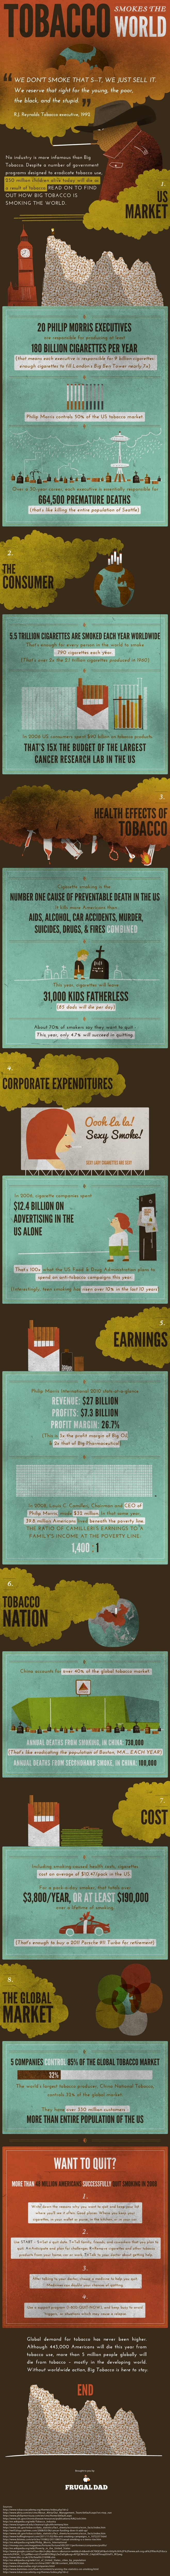 Facts about Smoking and the Tobacco Industry